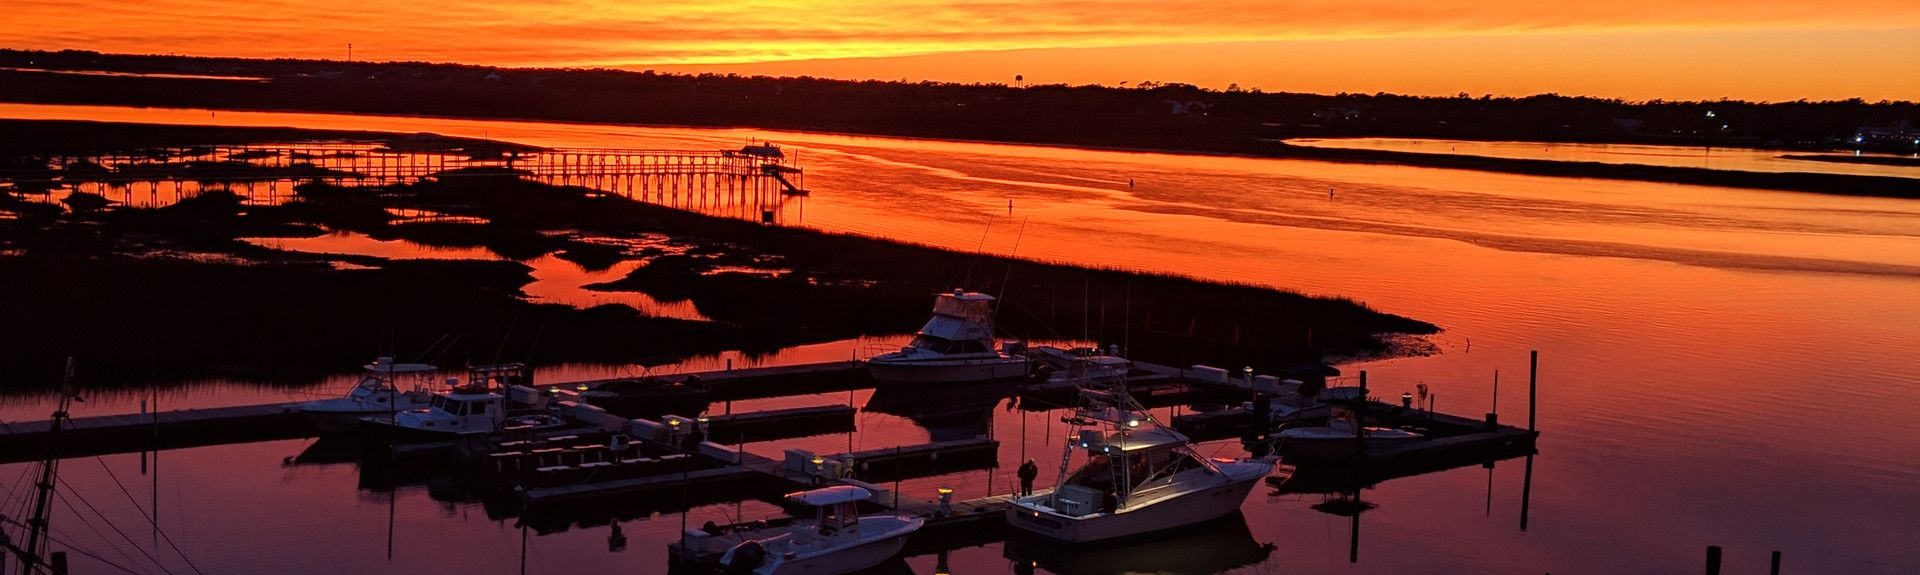 Inlet Harbour, Murrells Inlet, Carolina do Sul, Estados Unidos